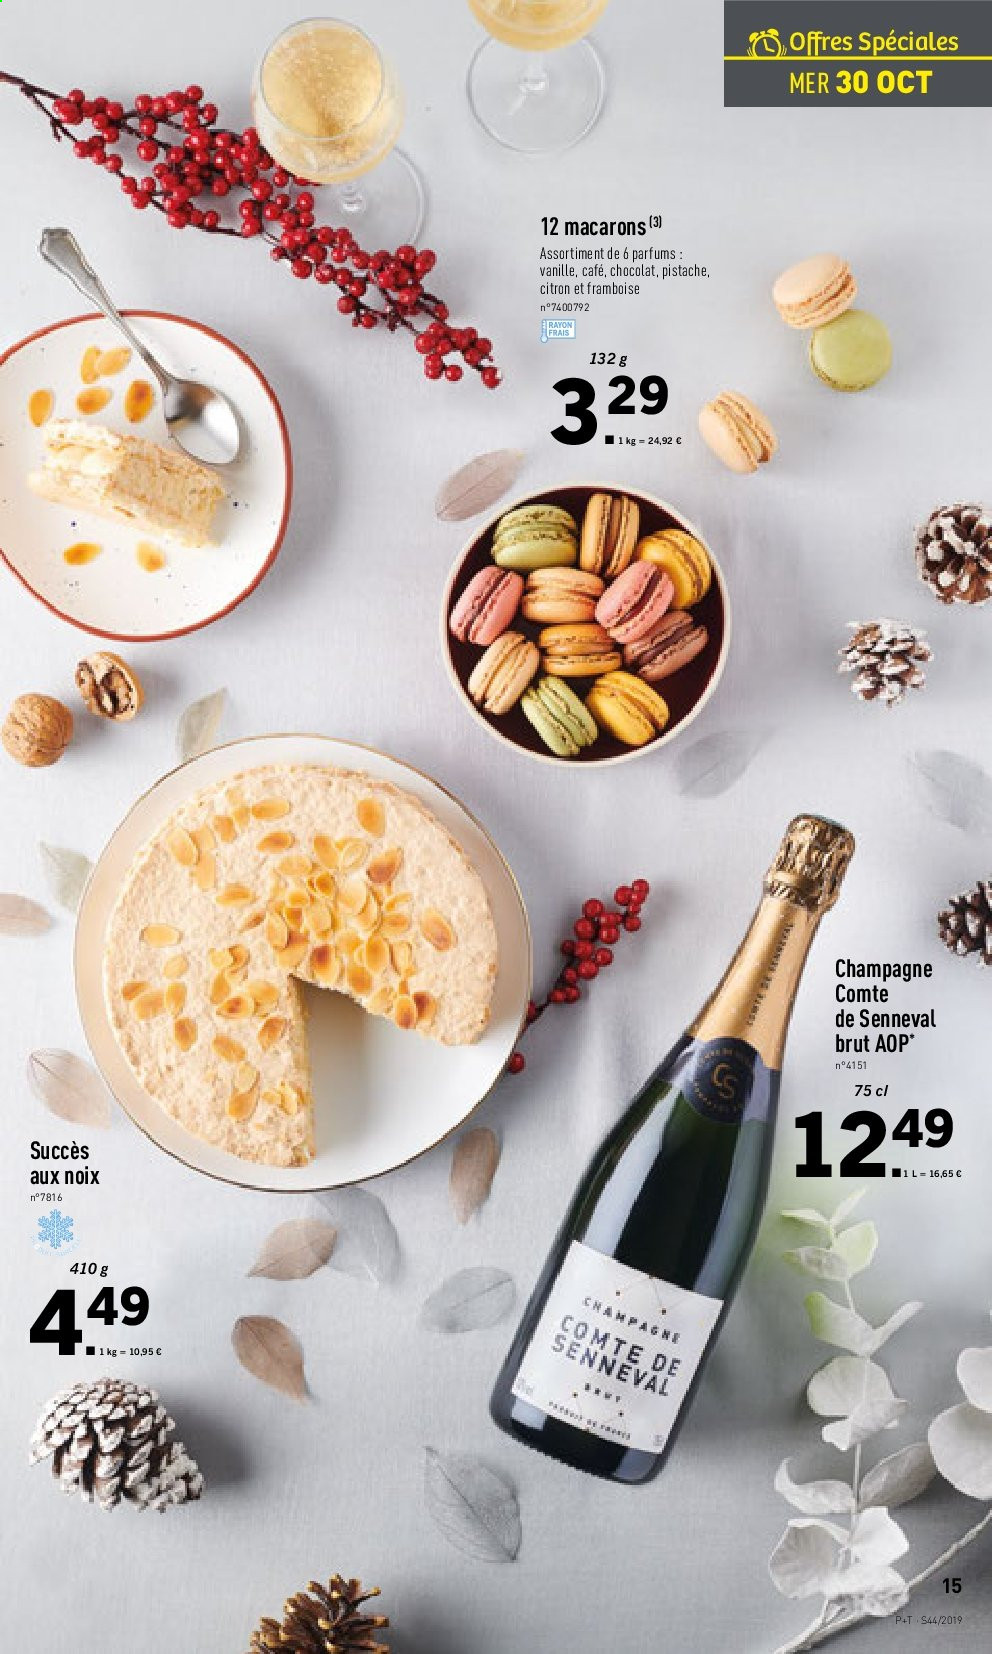 Catalogue Lidl - 30.10.2019 - 05.11.2019. Page 15.